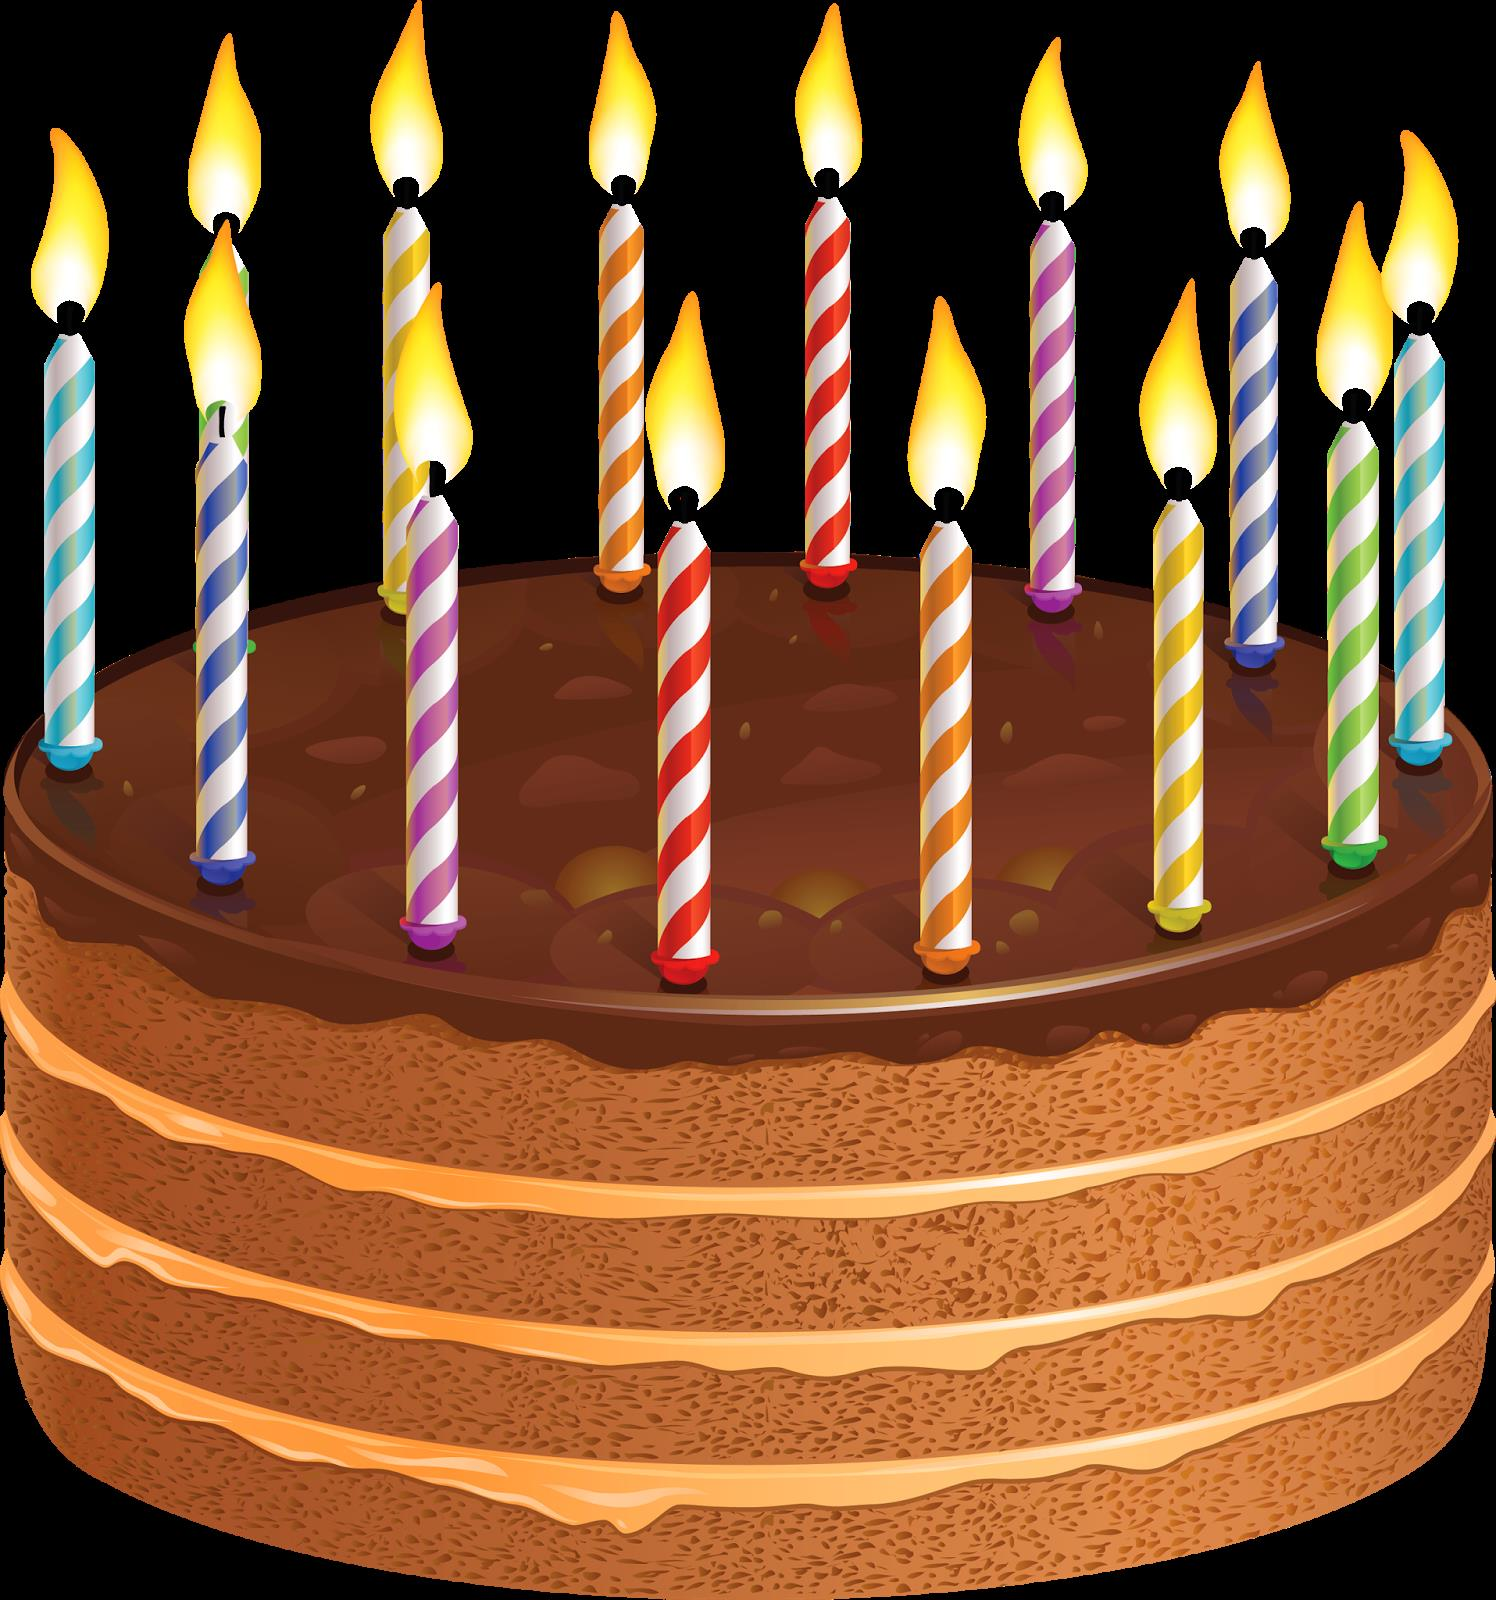 birthday cake with candles clipart ; e9ee866b6d950066fb41daf04b1fbd96